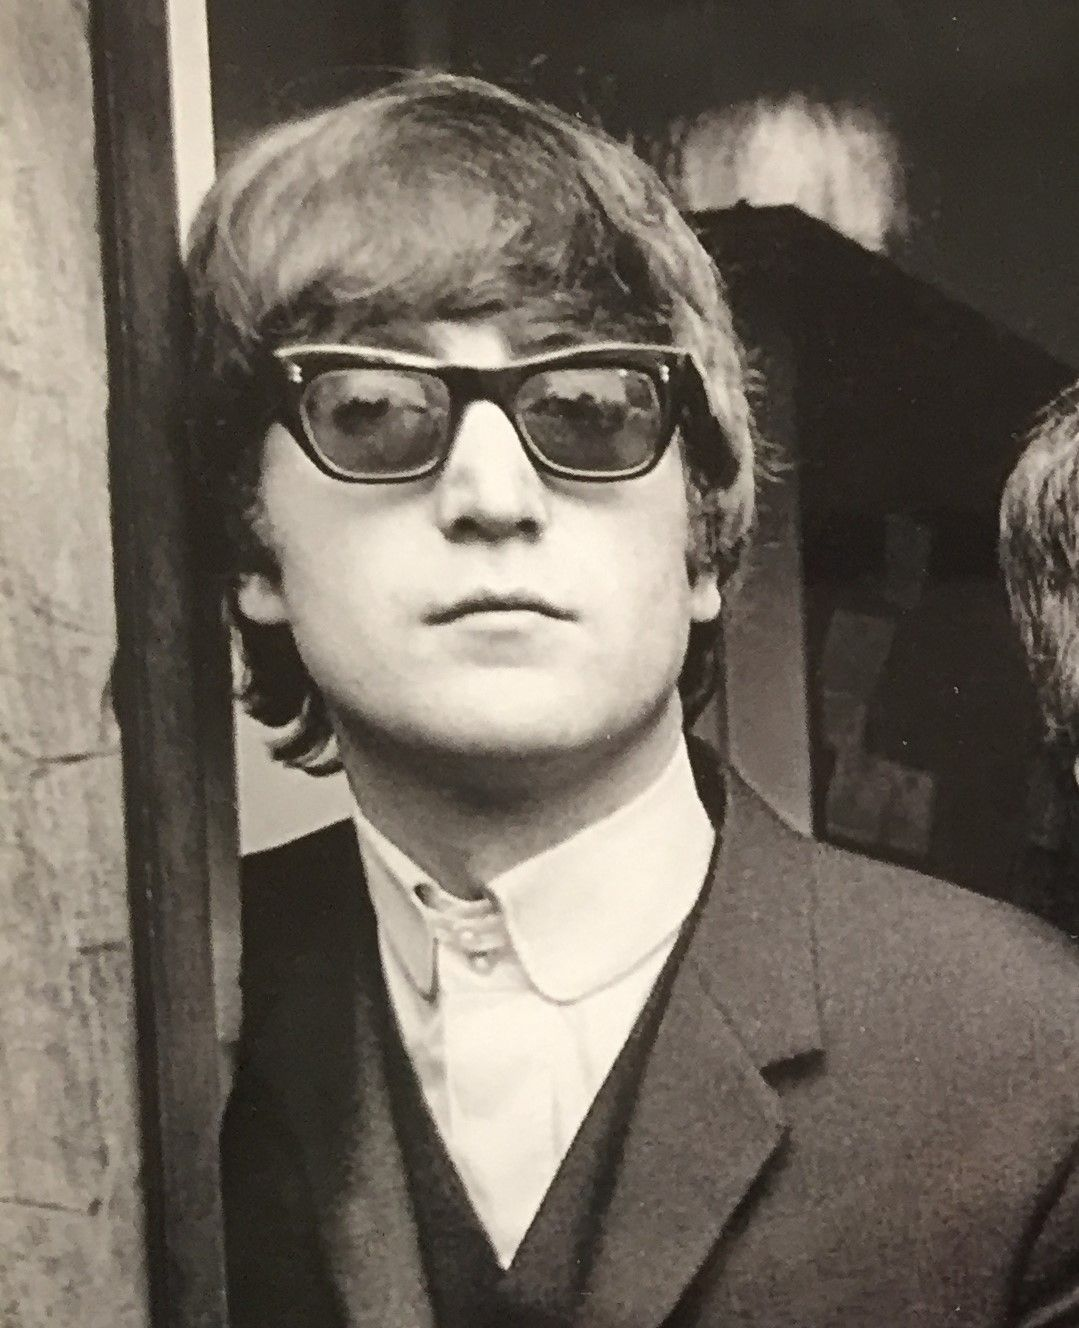 John Lennon Early 60s In Sunglasses Different From His Signature Look